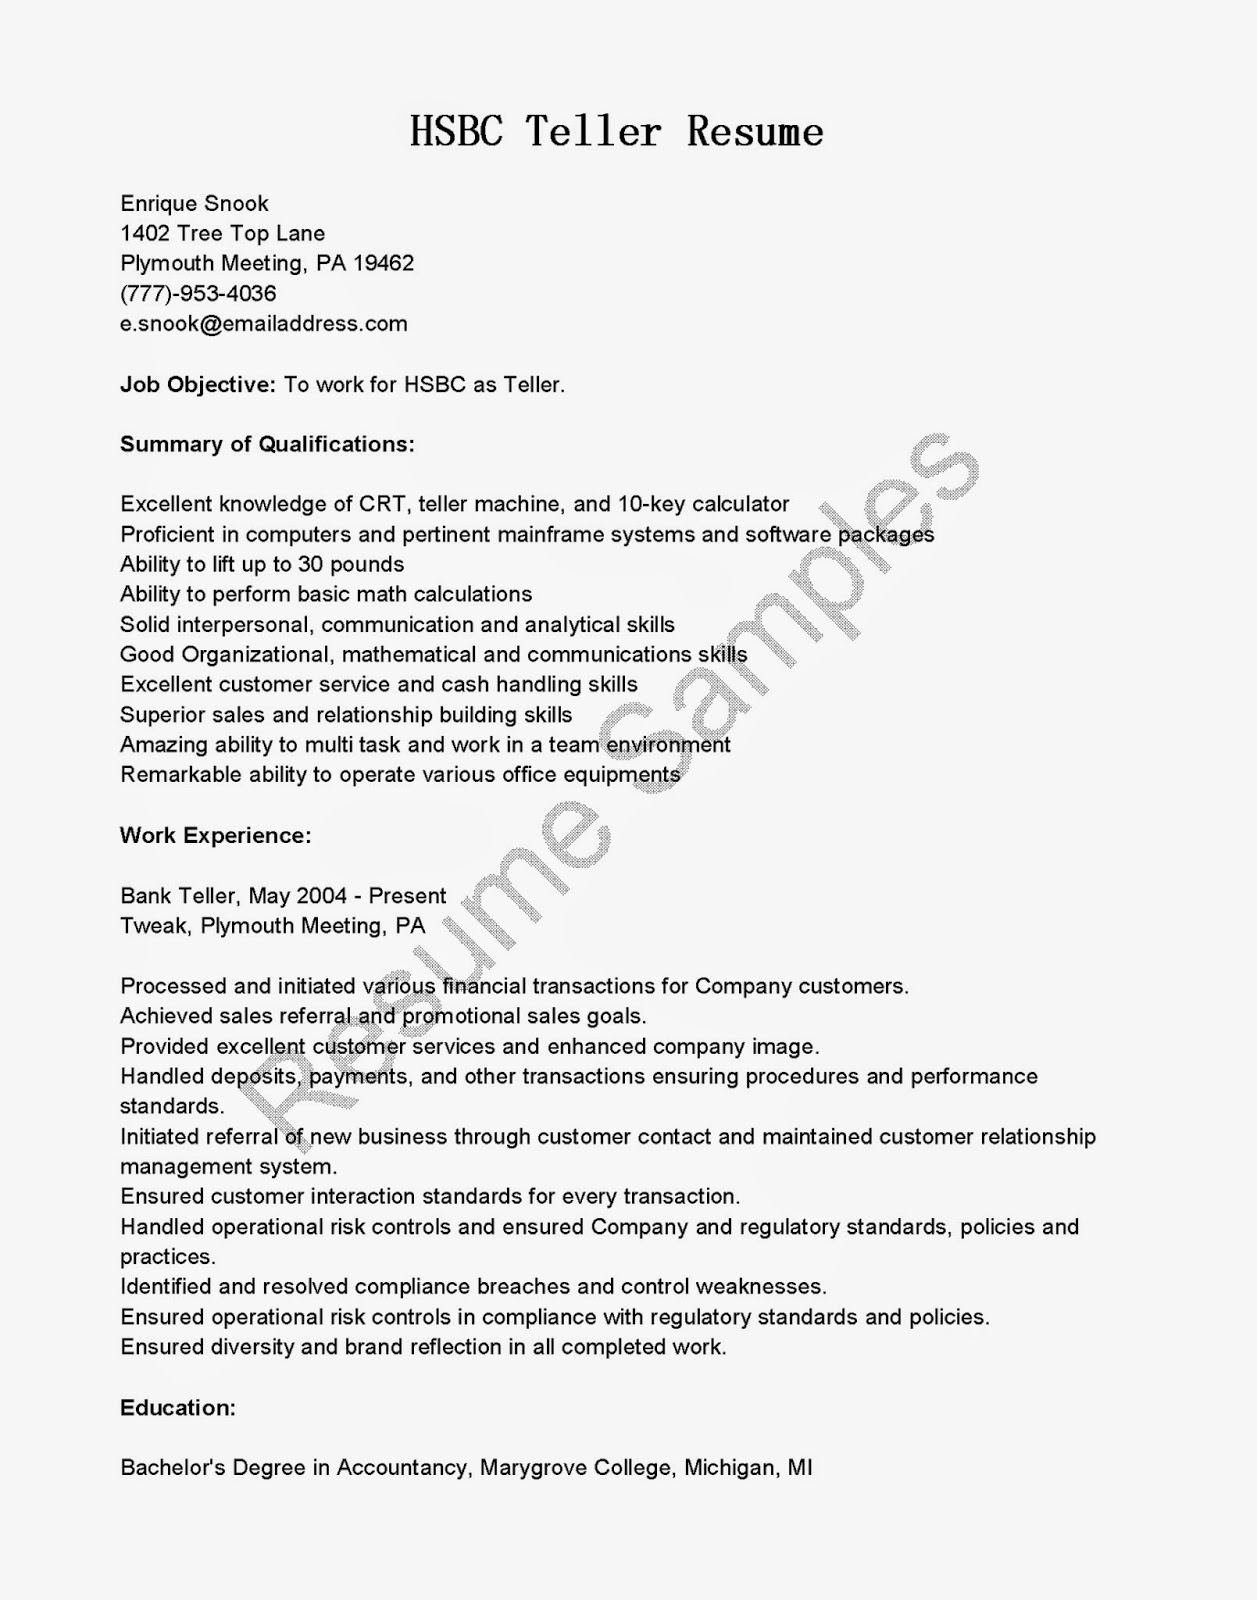 entry level banking resume resume entry level banking outstanding cover letter examples resume entry level banking outstanding cover letter examples